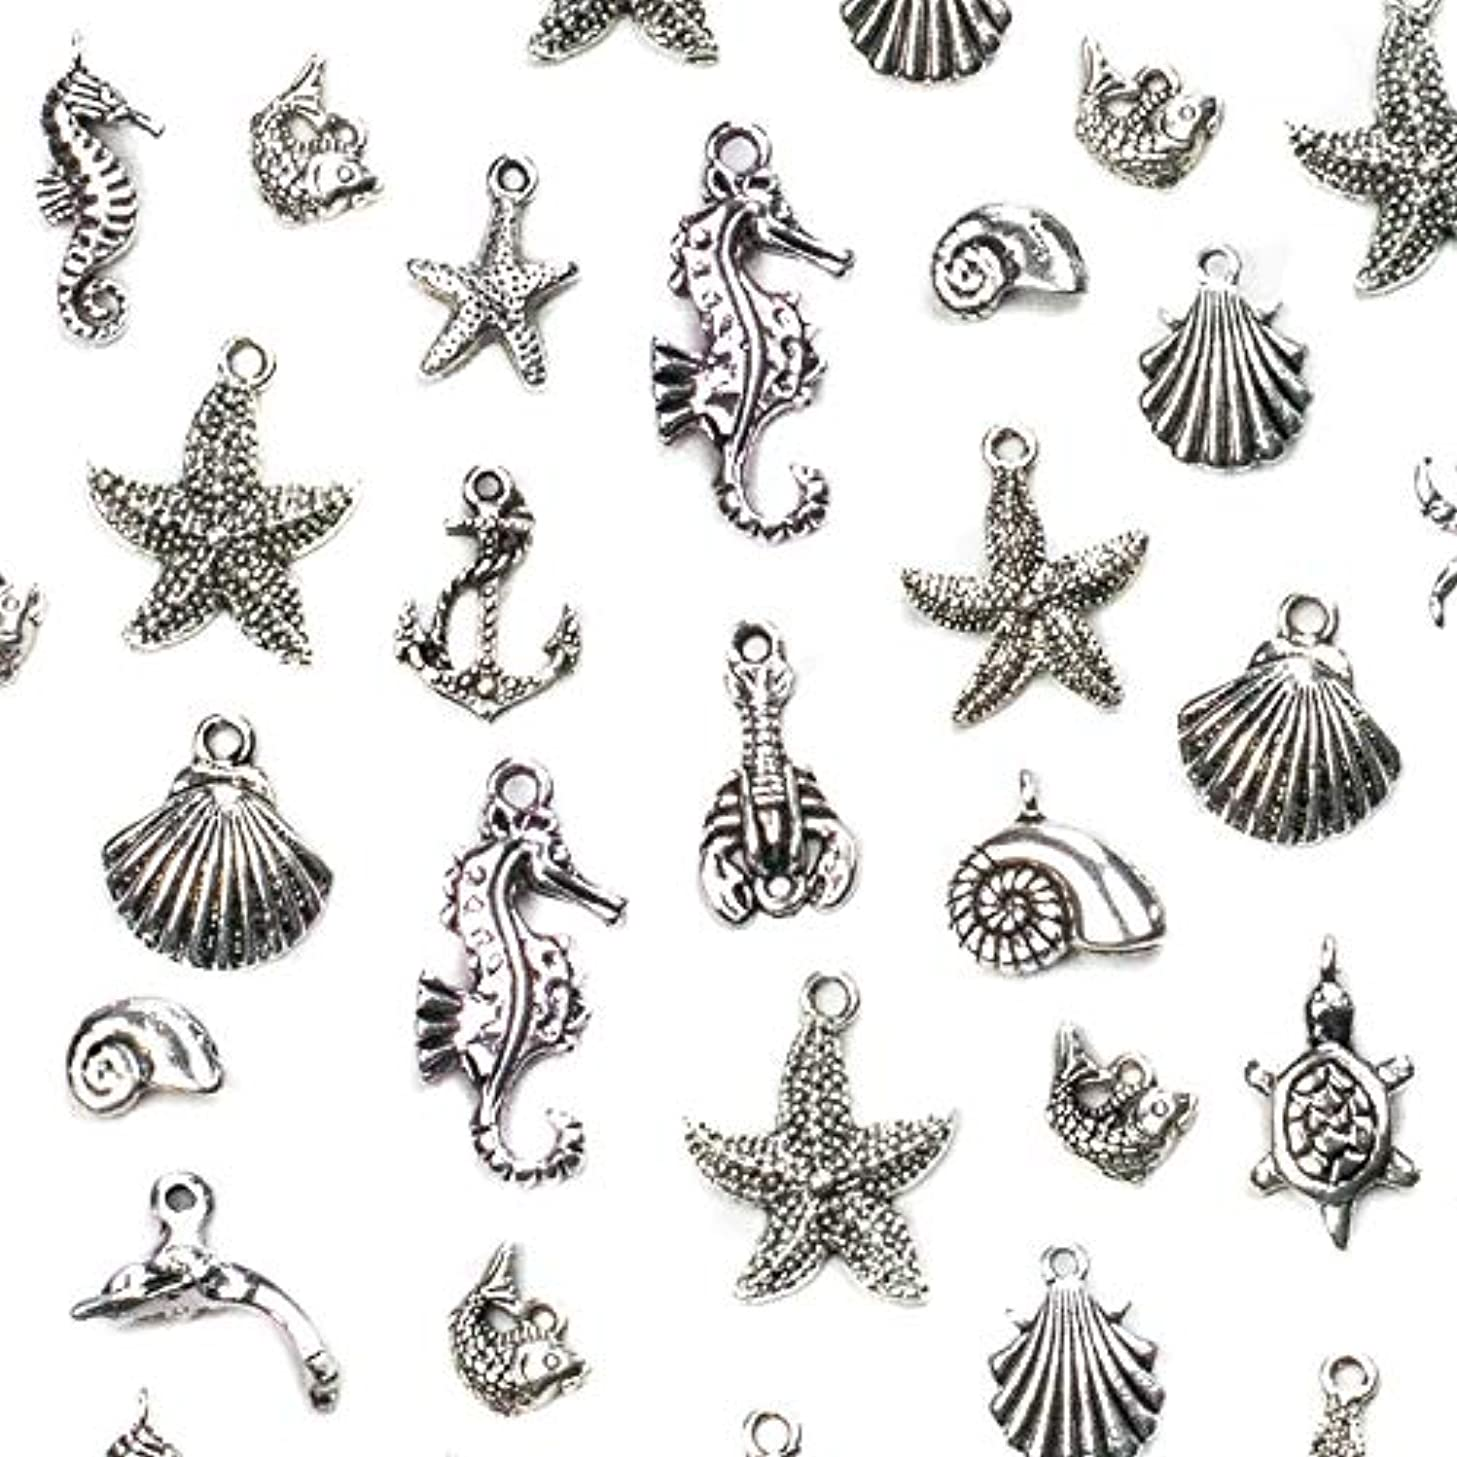 Cherry Blossom Beads An Assorted Mix of 100 Silver Pewter Ocean and Sea Life Themed Charms